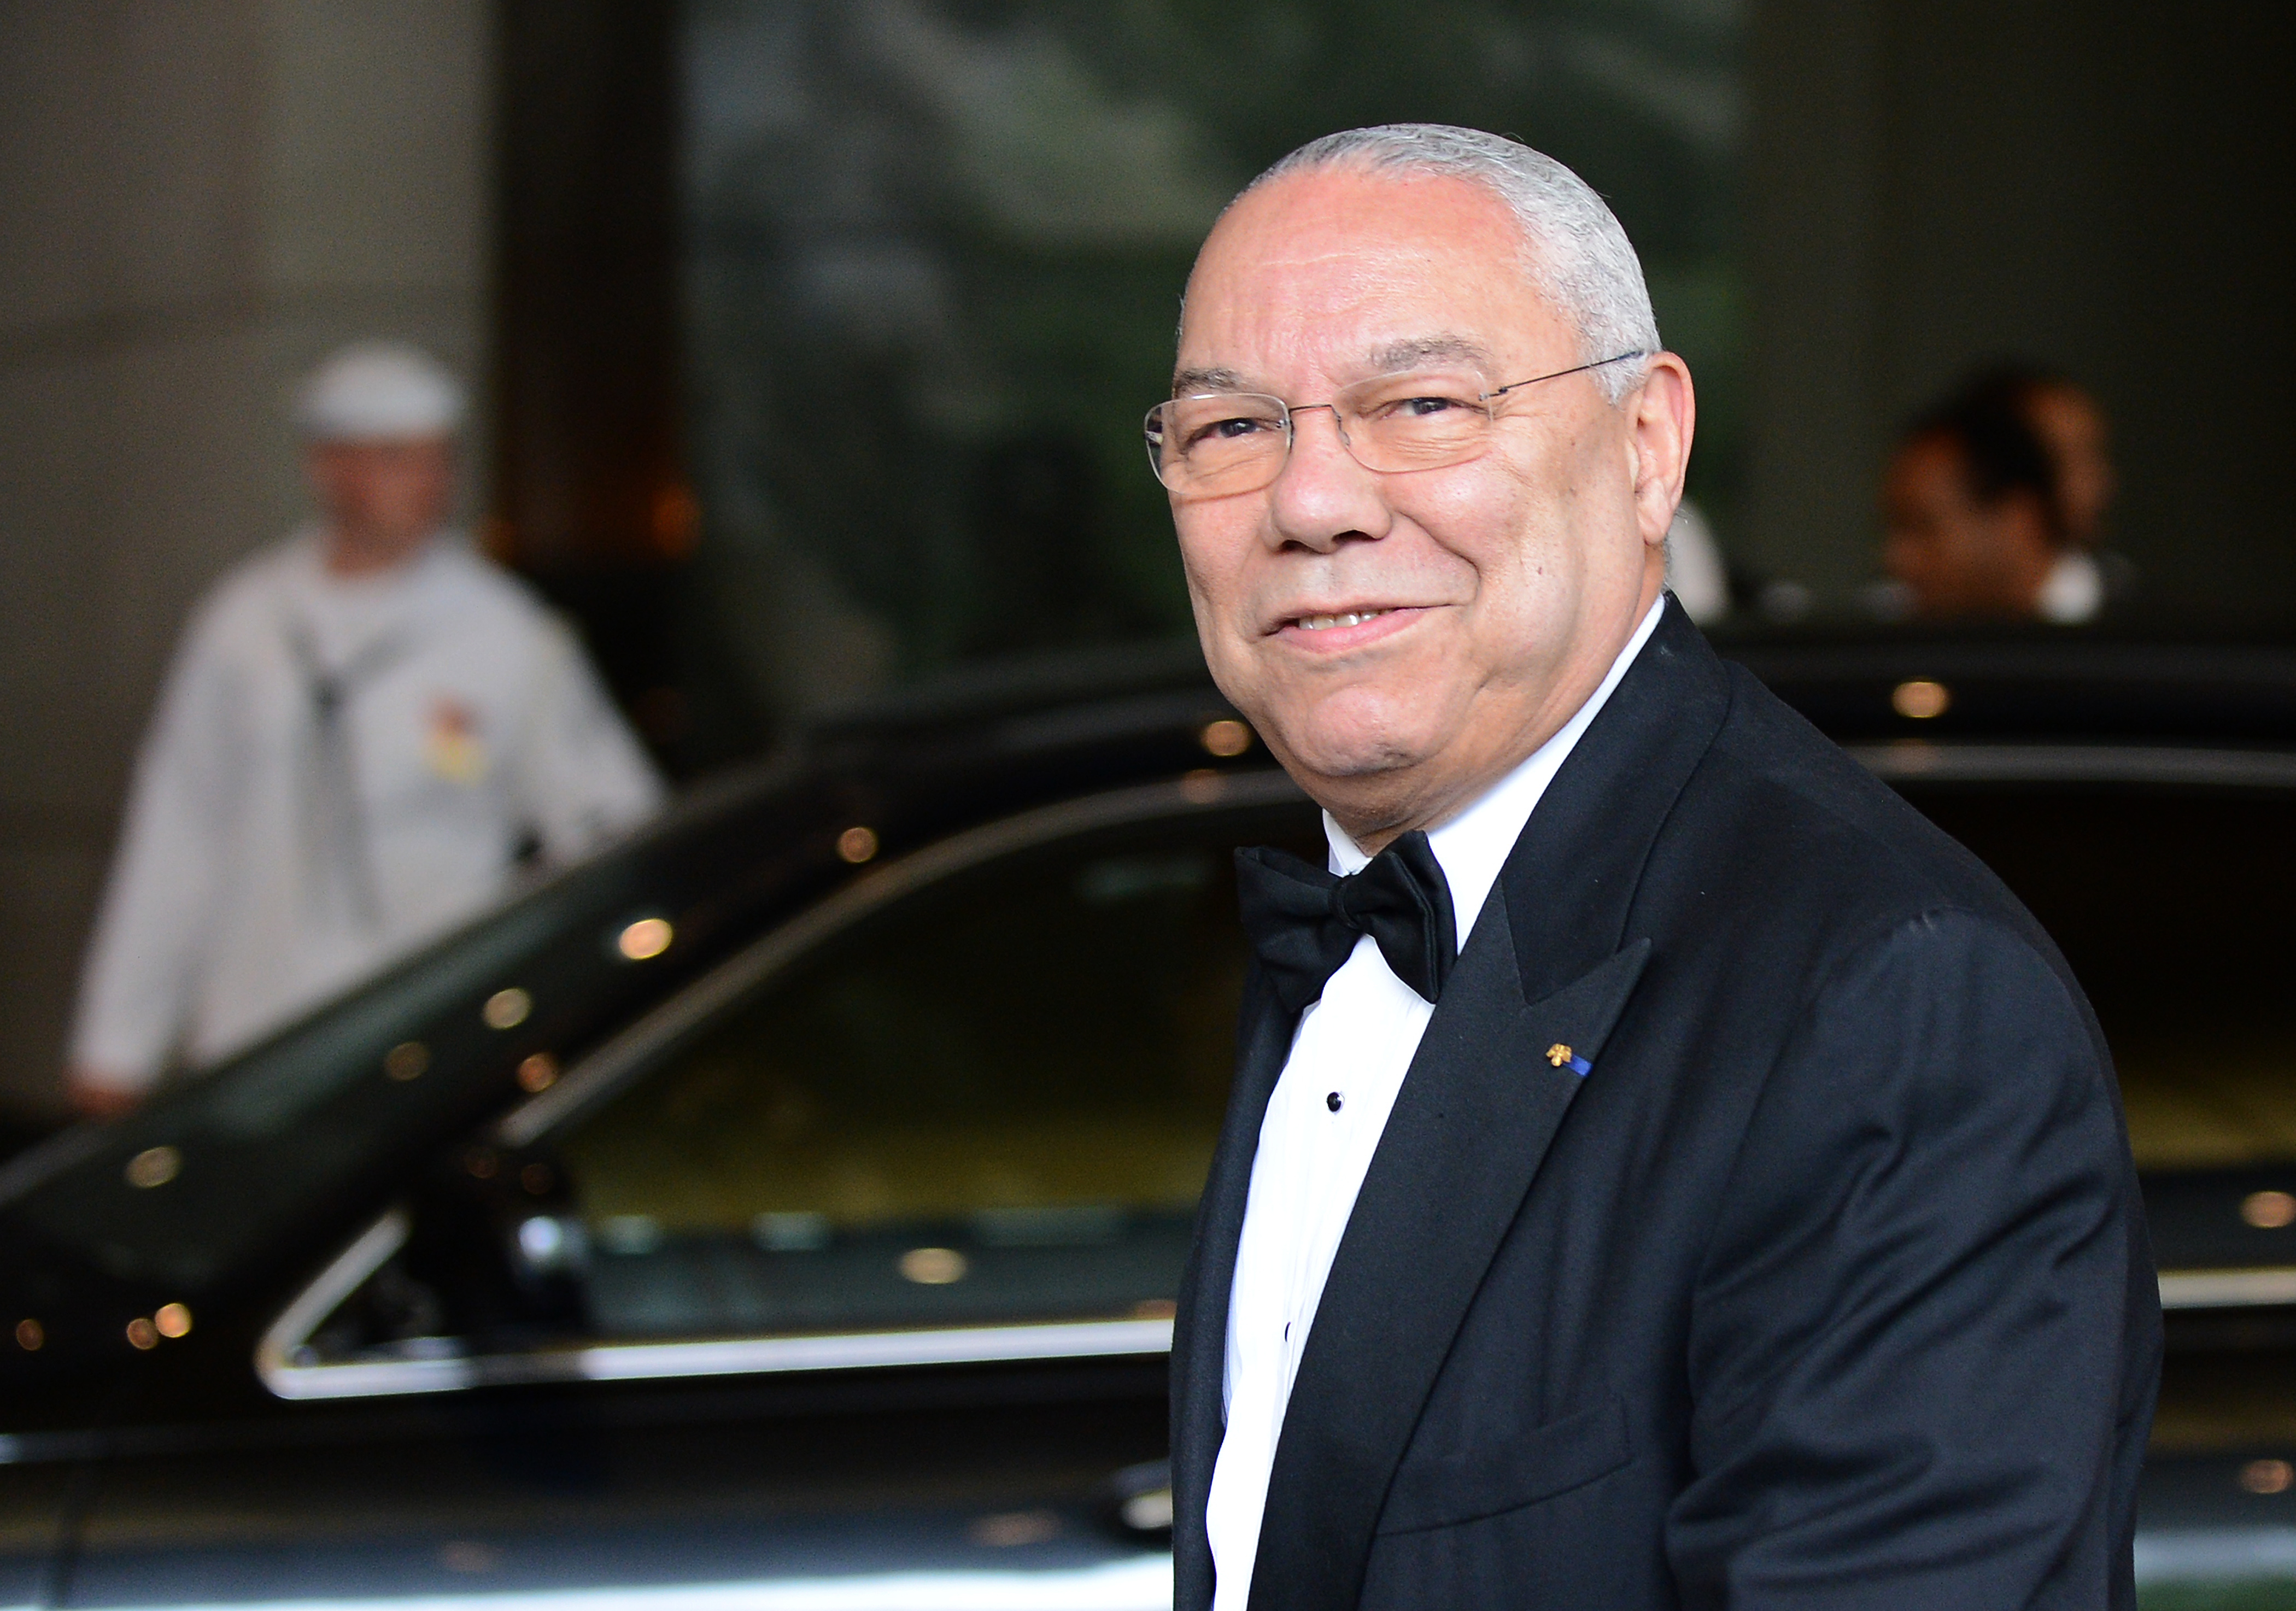 Colin Powell's Facebook page hacked - CBS News